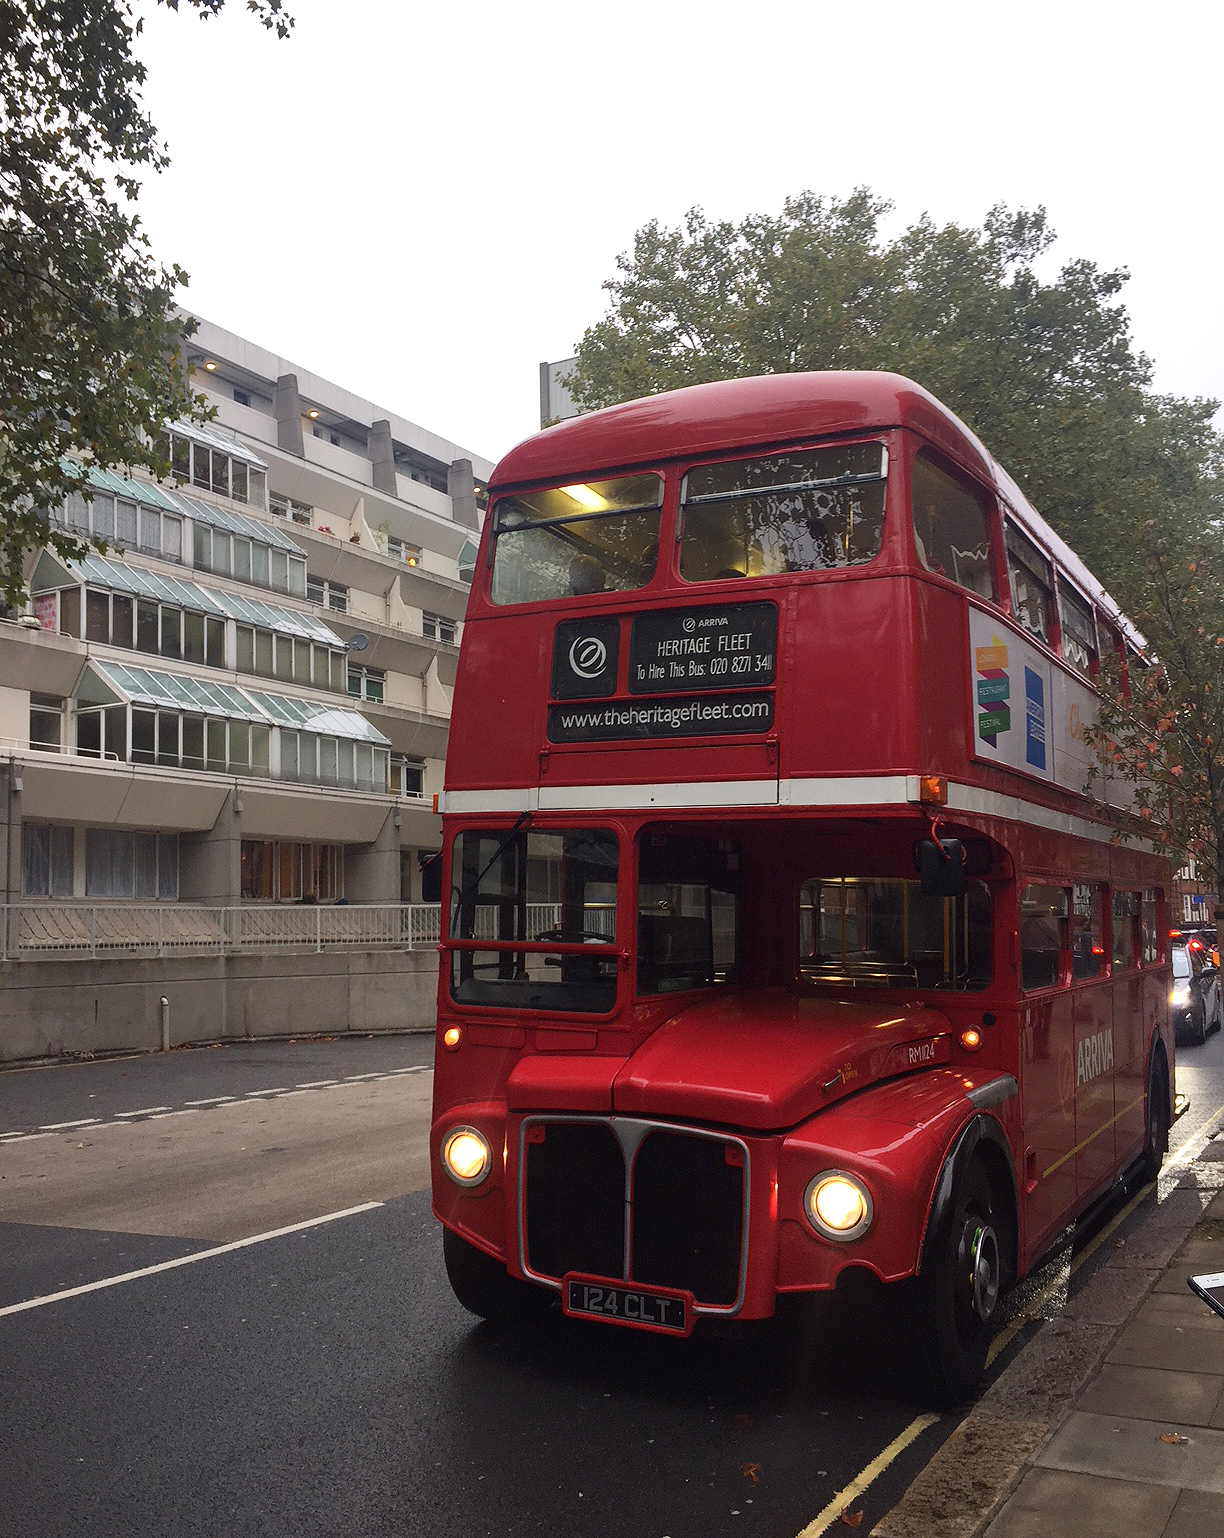 The Routemaster bus at the Brunswick Centre